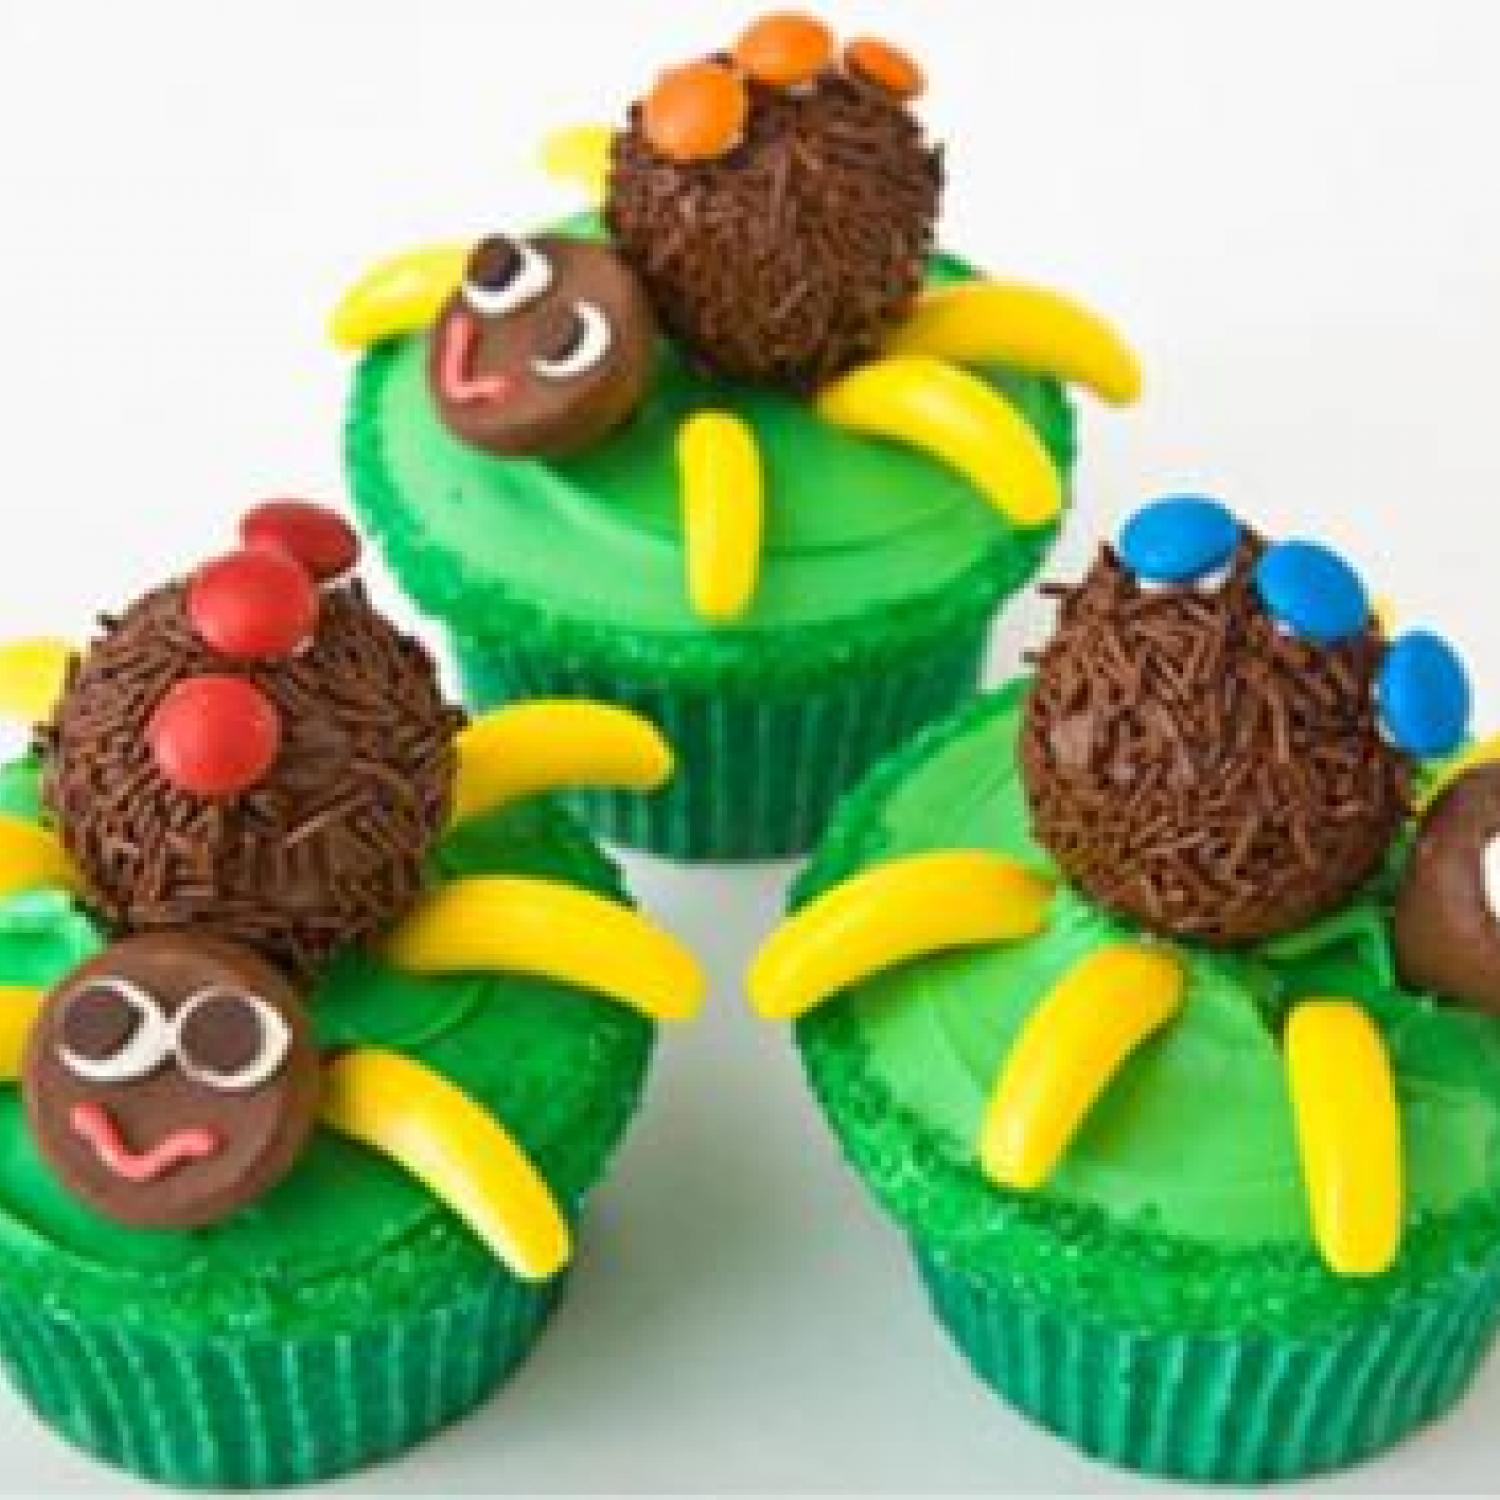 Spider Cupcakes Birthday Cake Design Parenting